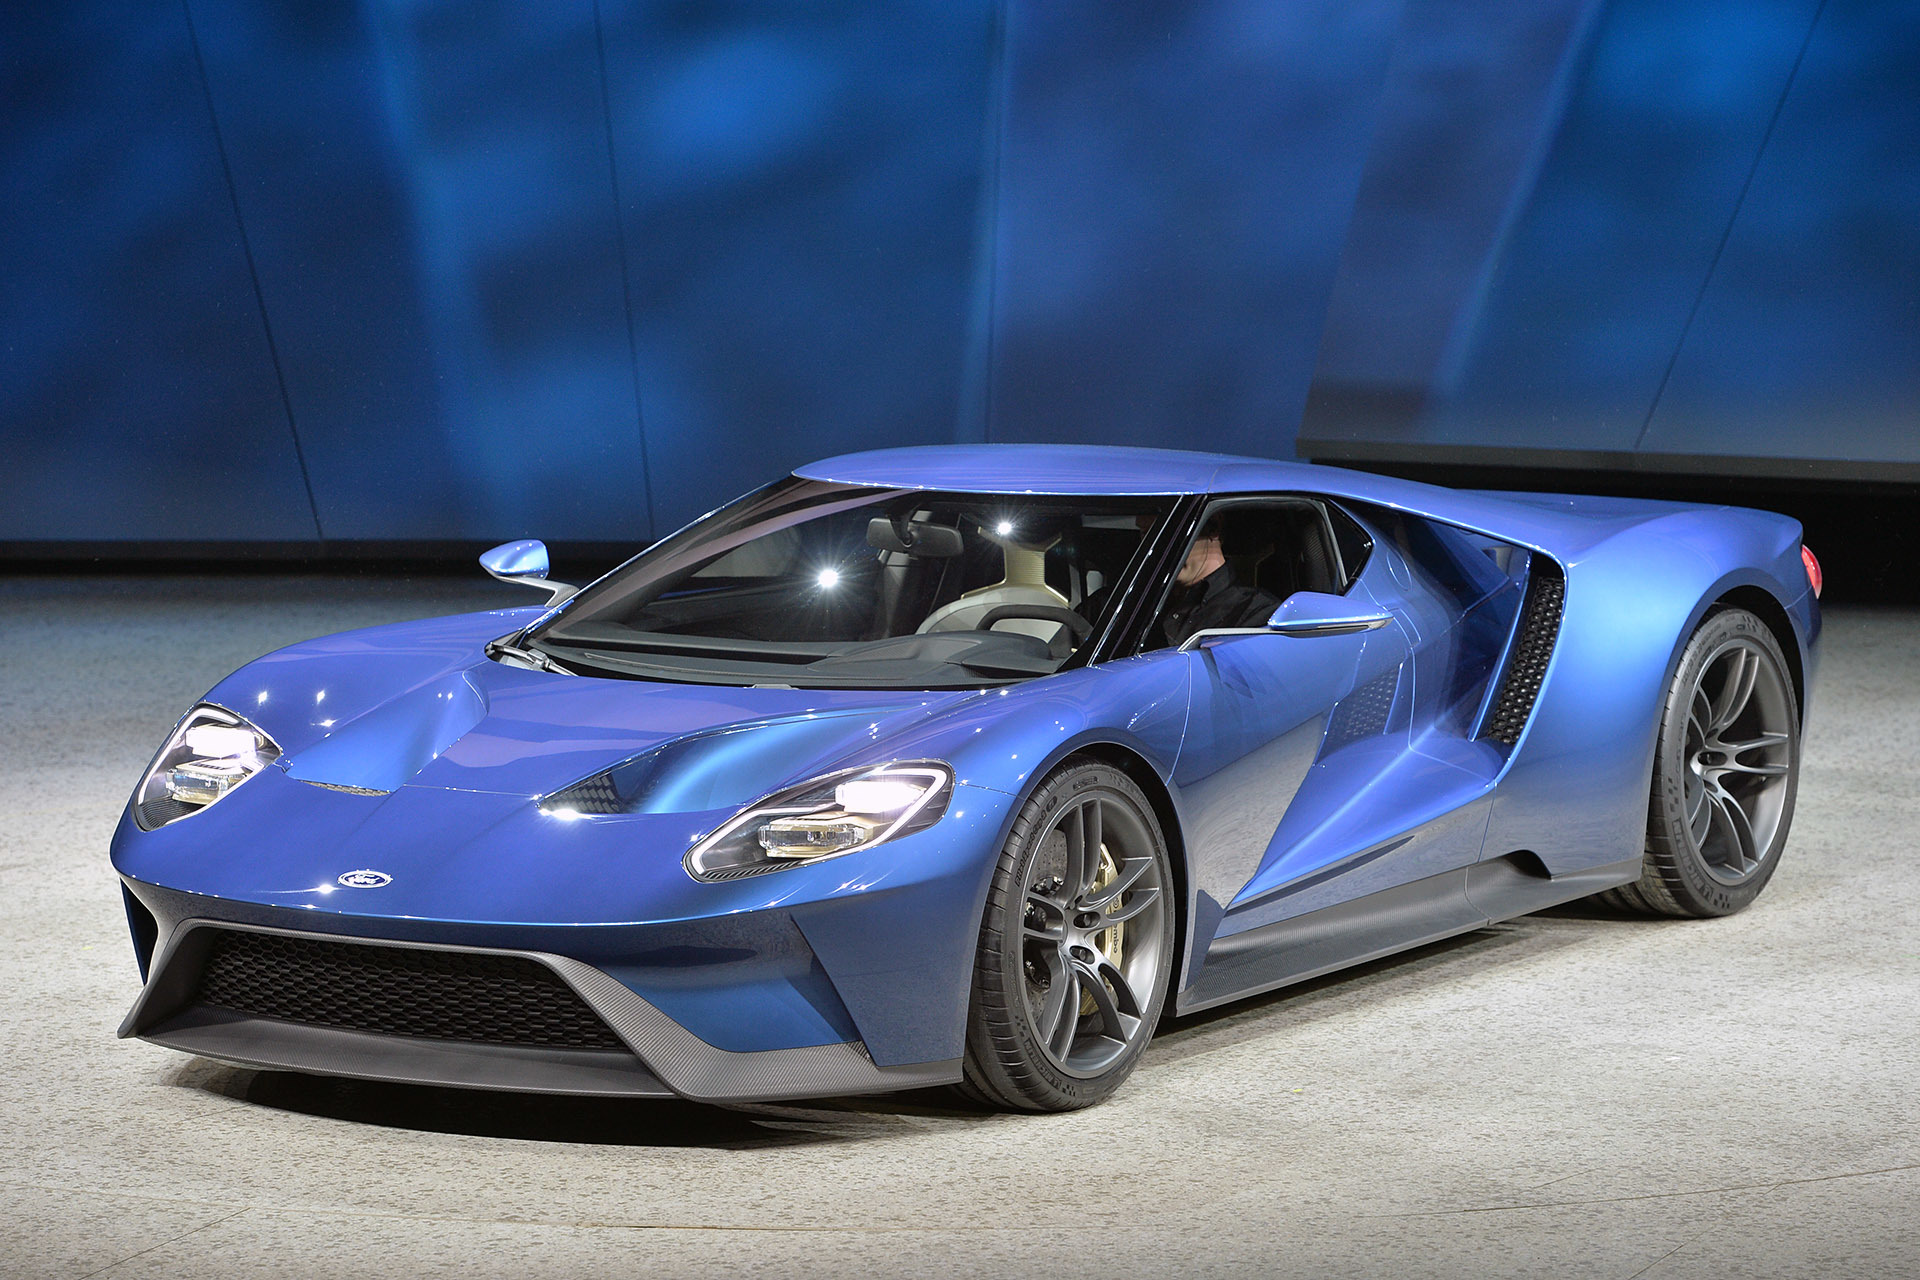 2016 Ford concept photo - 2